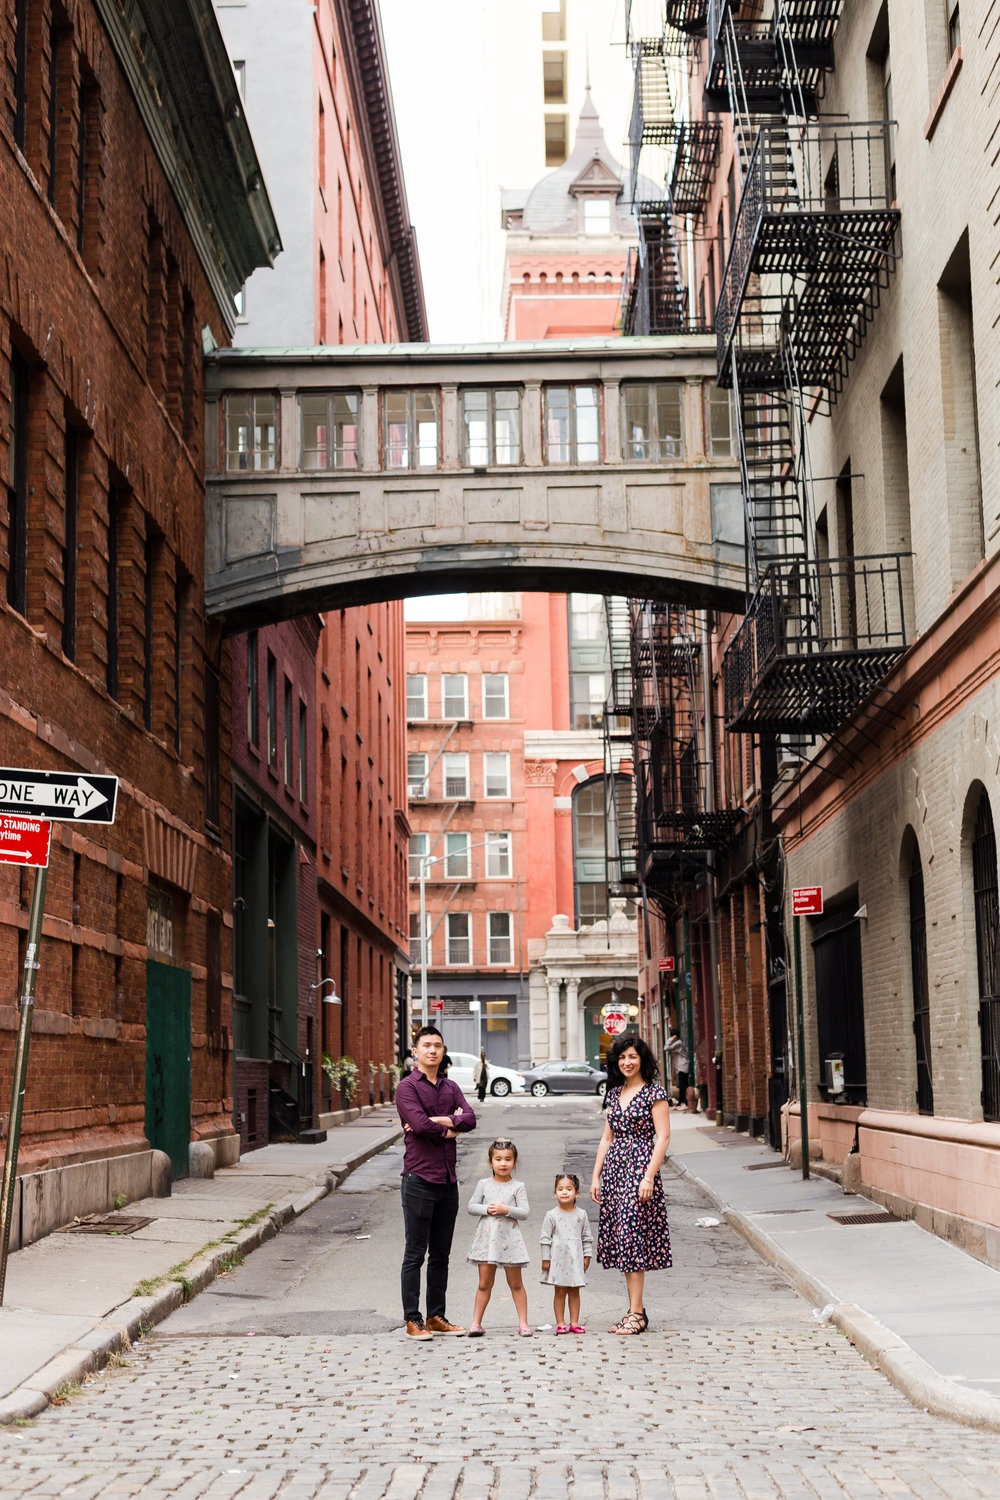 lissiephoto_loomis_nyc_family_photography61.JPG